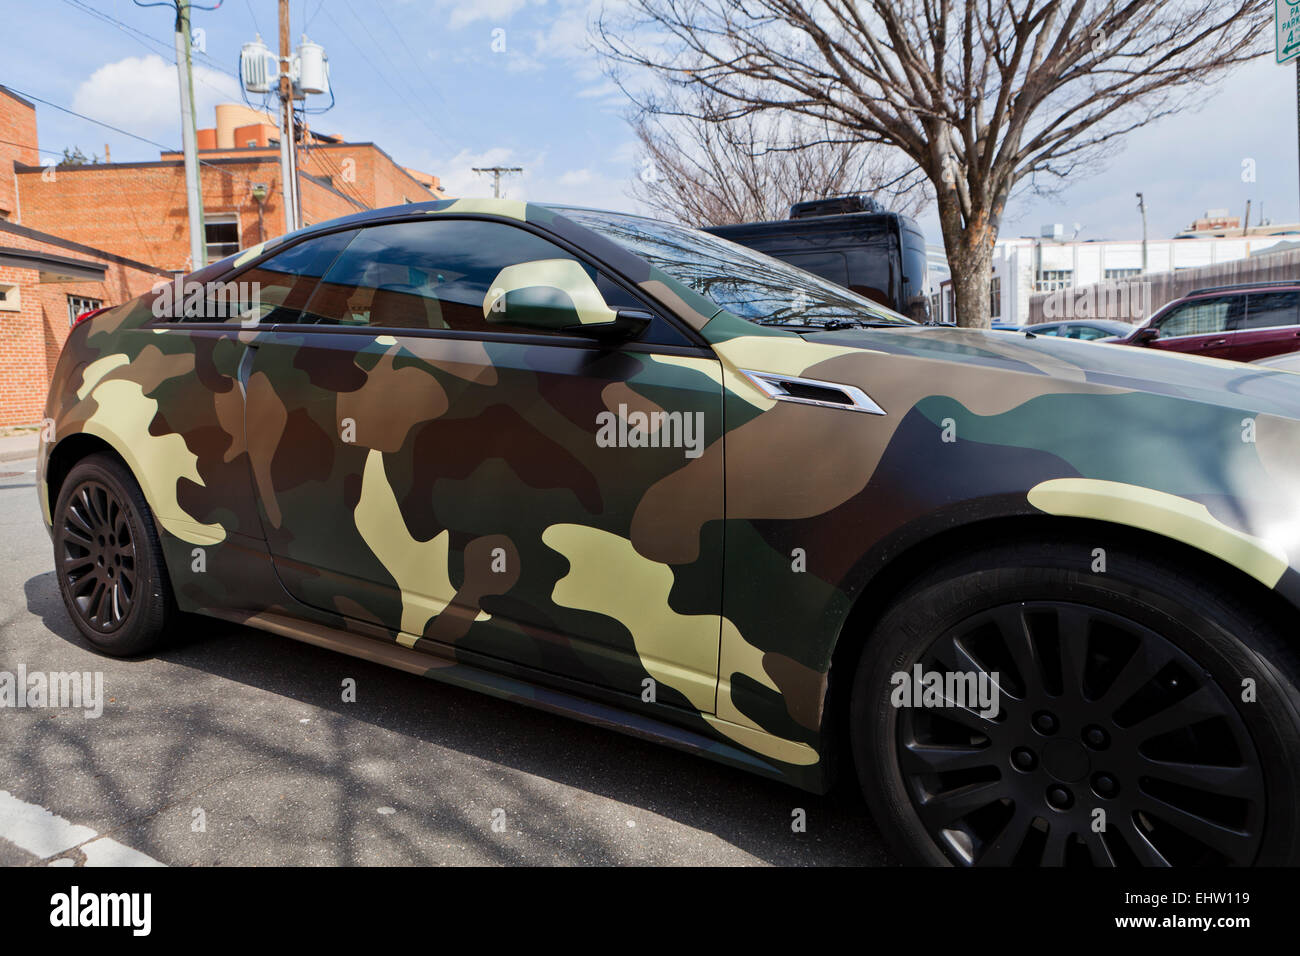 2143e9e018 Car with military camouflage pattern wrap - USA - Stock Image